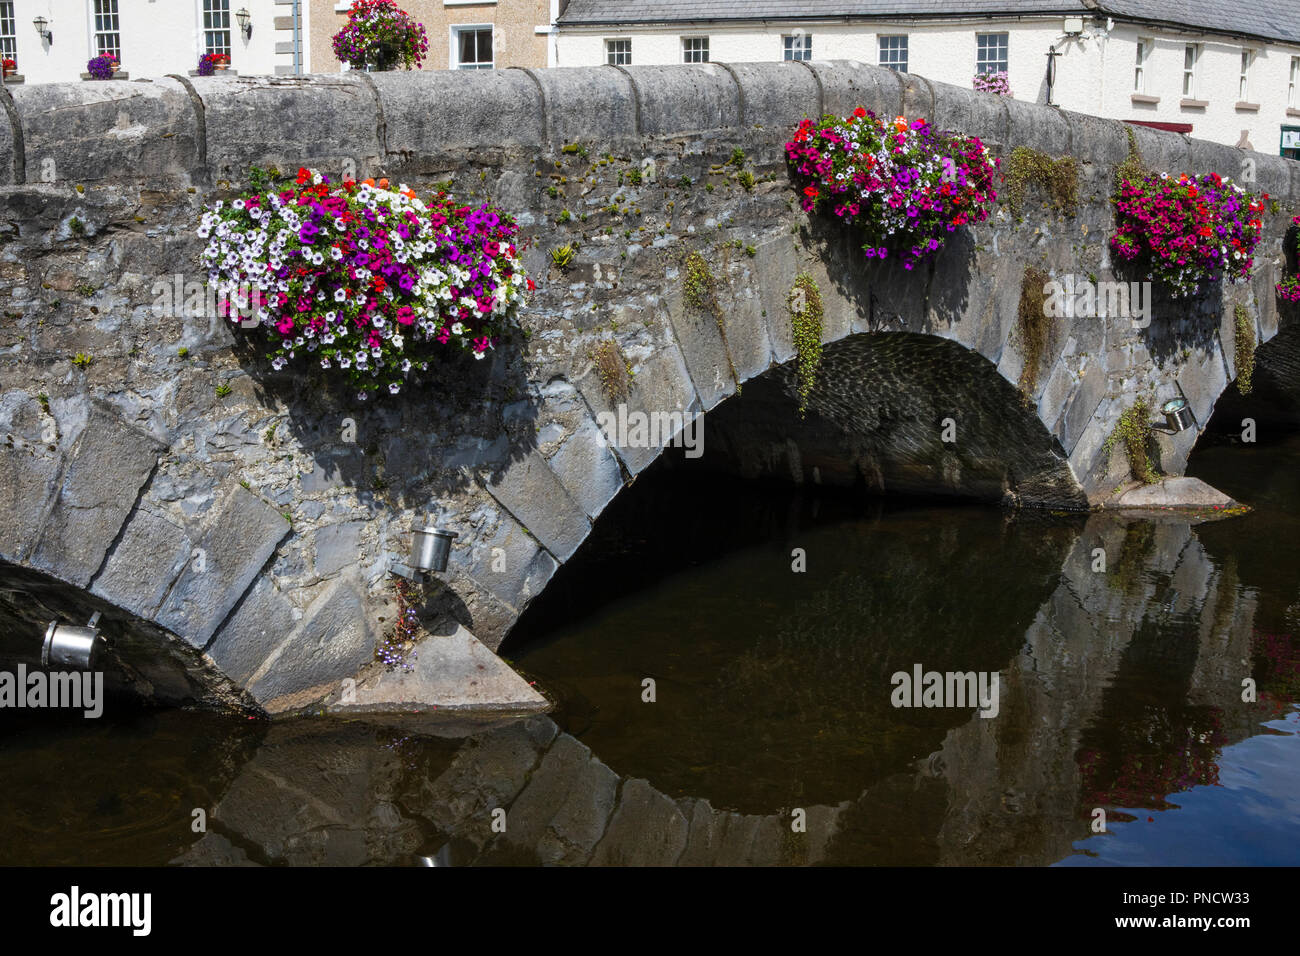 ea824ec3720b5 A bridge over the Carrowbeg River in the town of Westport, County Mayo,  Ireland